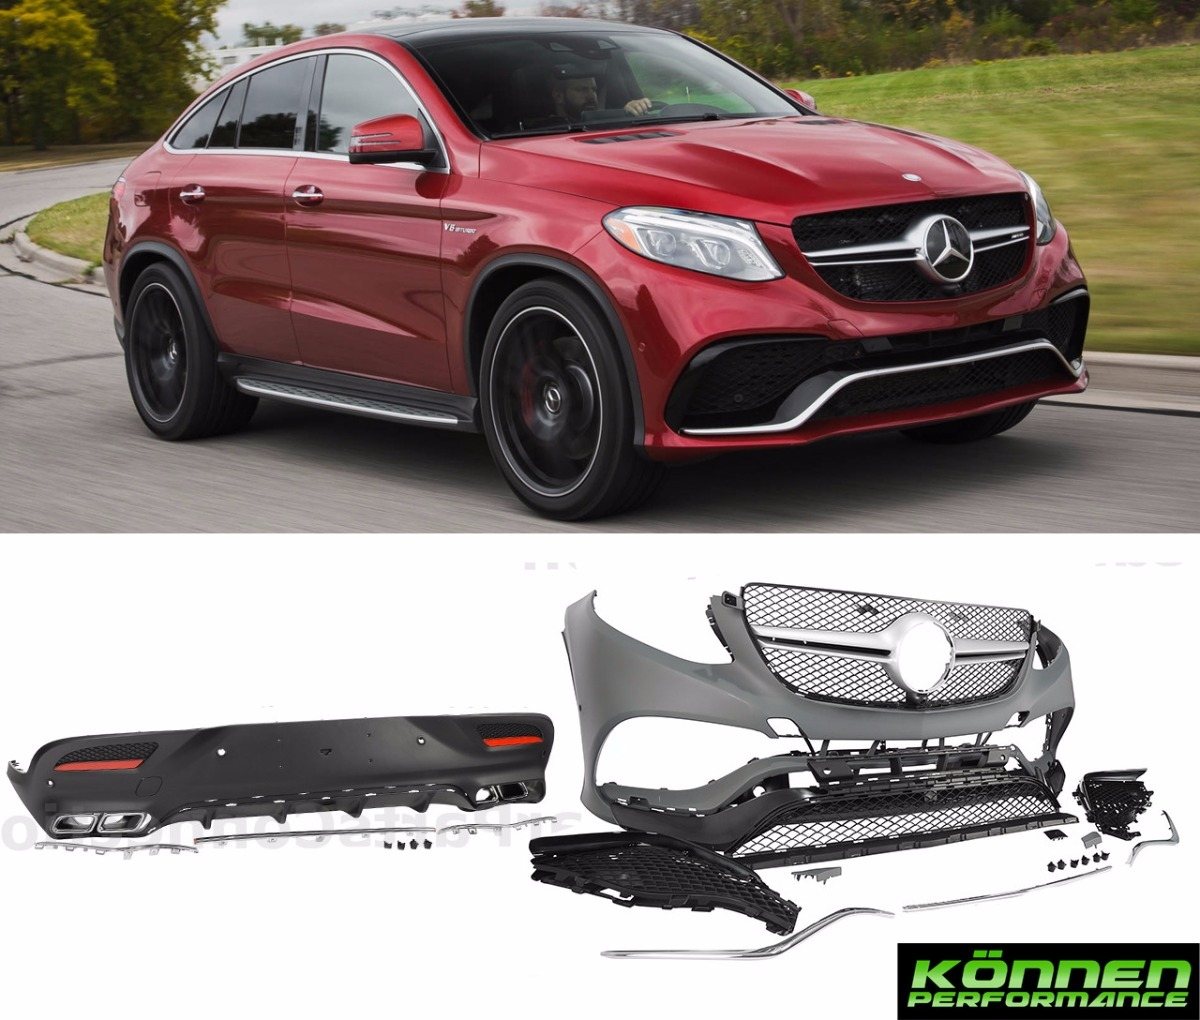 2016 Mercedes Benz Gle Coupe Exterior: Gle Coupe Body Kit Gle63 Amg 16-17 Mercedes Facia Defensa